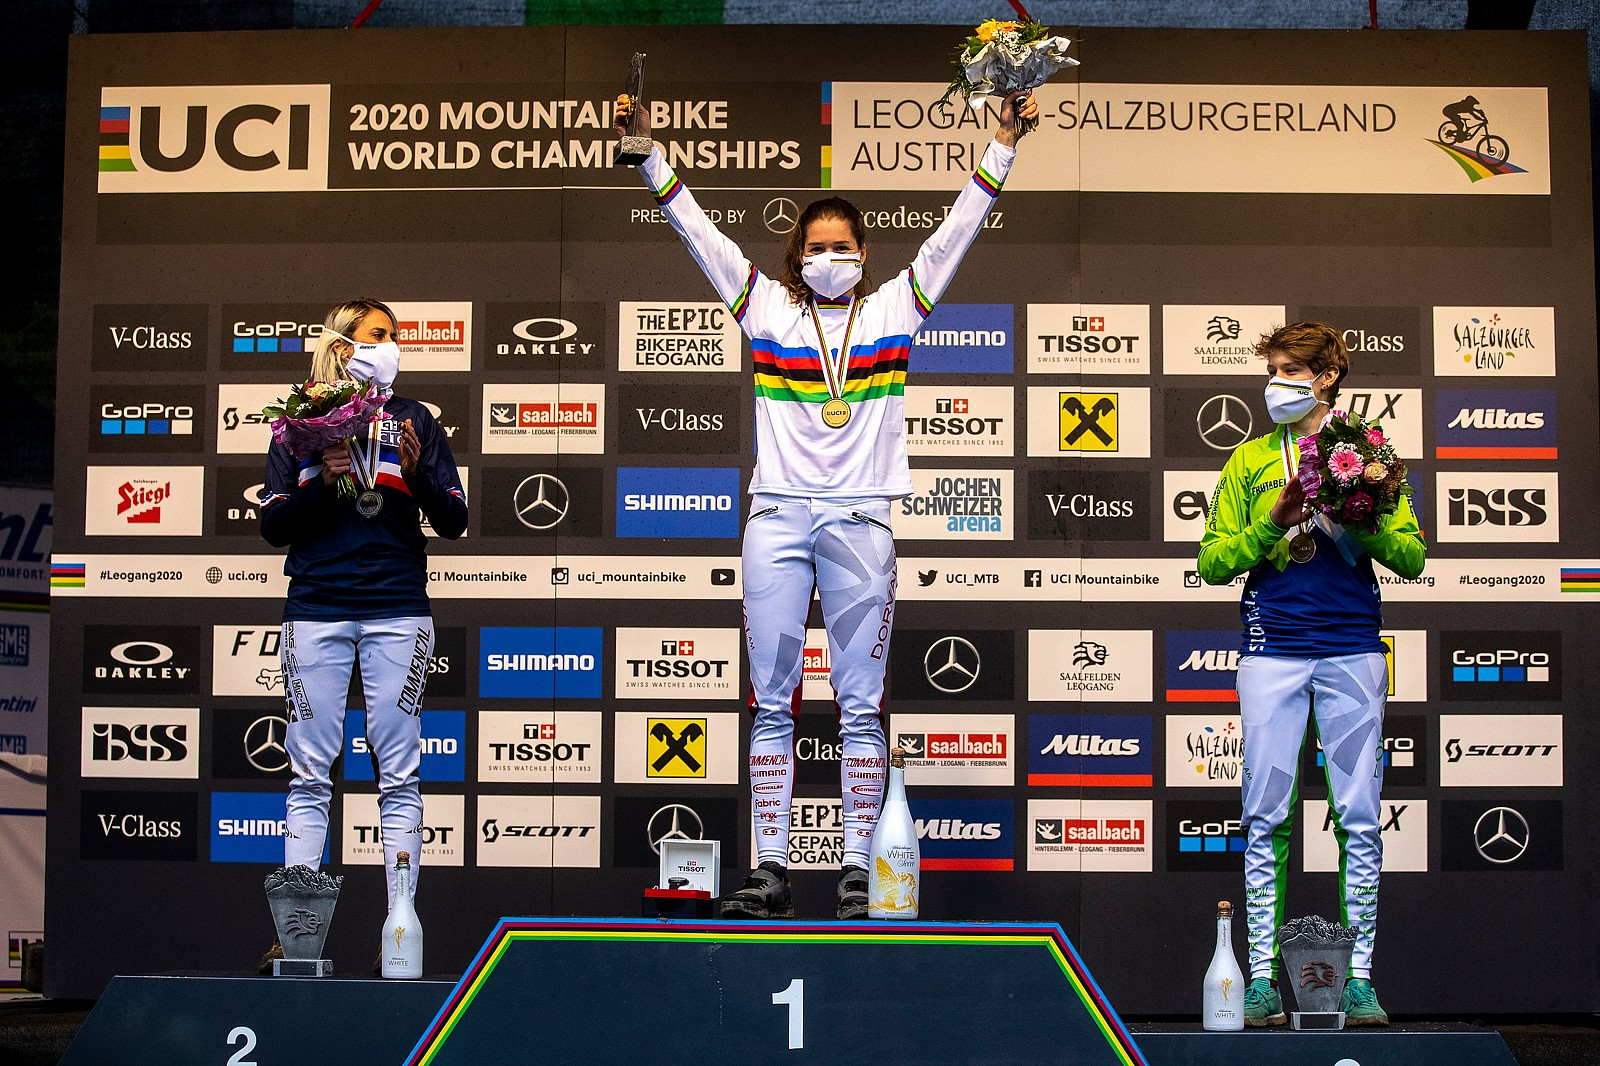 Camille Balanche, 2020 DH MTB World Champion! - WINNING BIKE: Camille Balanche's Commencal Supreme from World Champs - Mountain Biking Pictures - Vital MTB